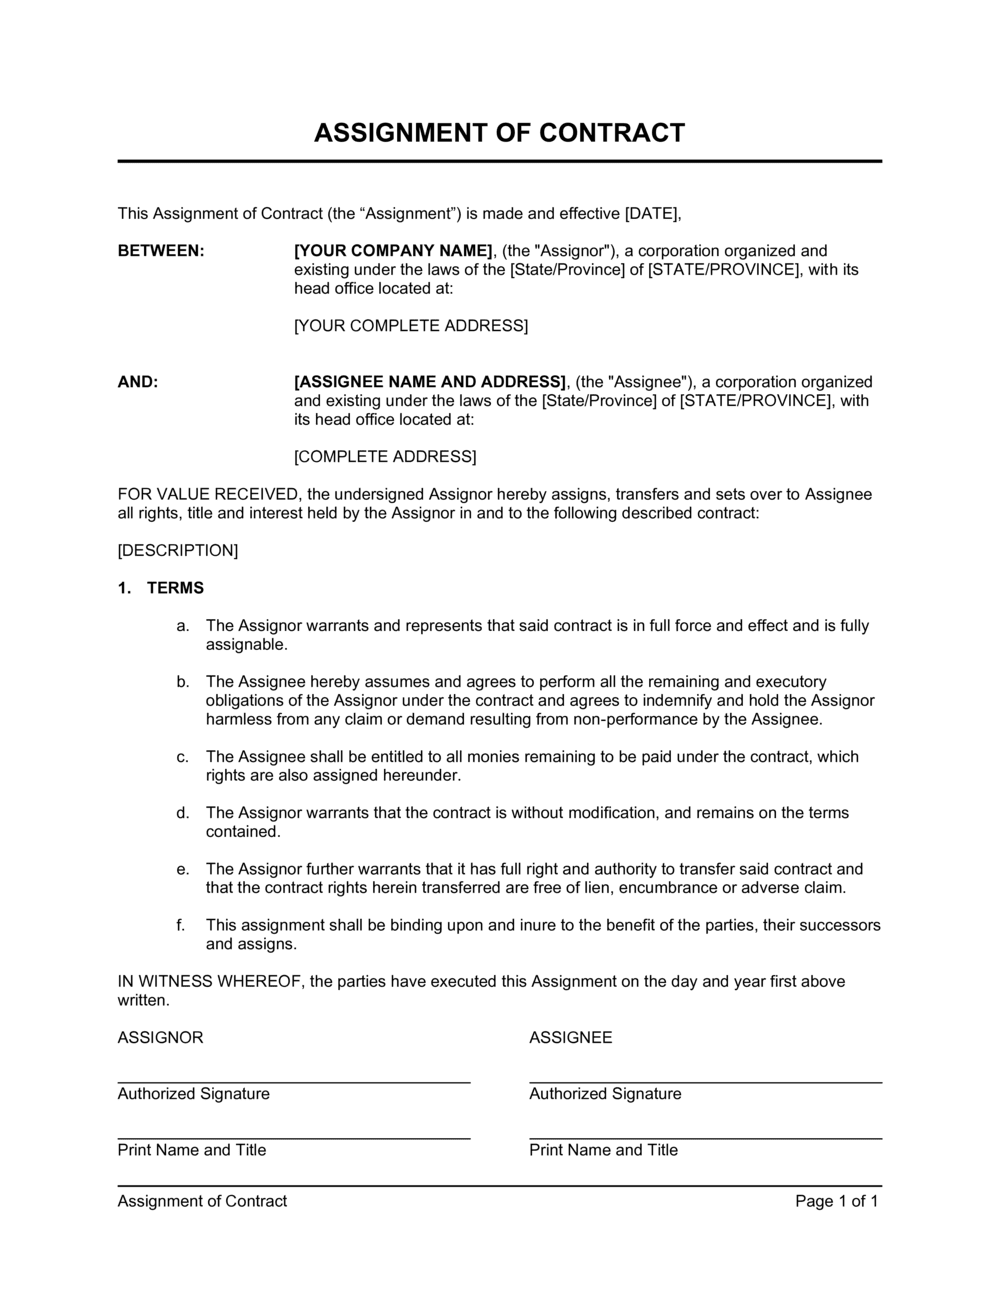 Business-in-a-Box's Assignment of Contract Template